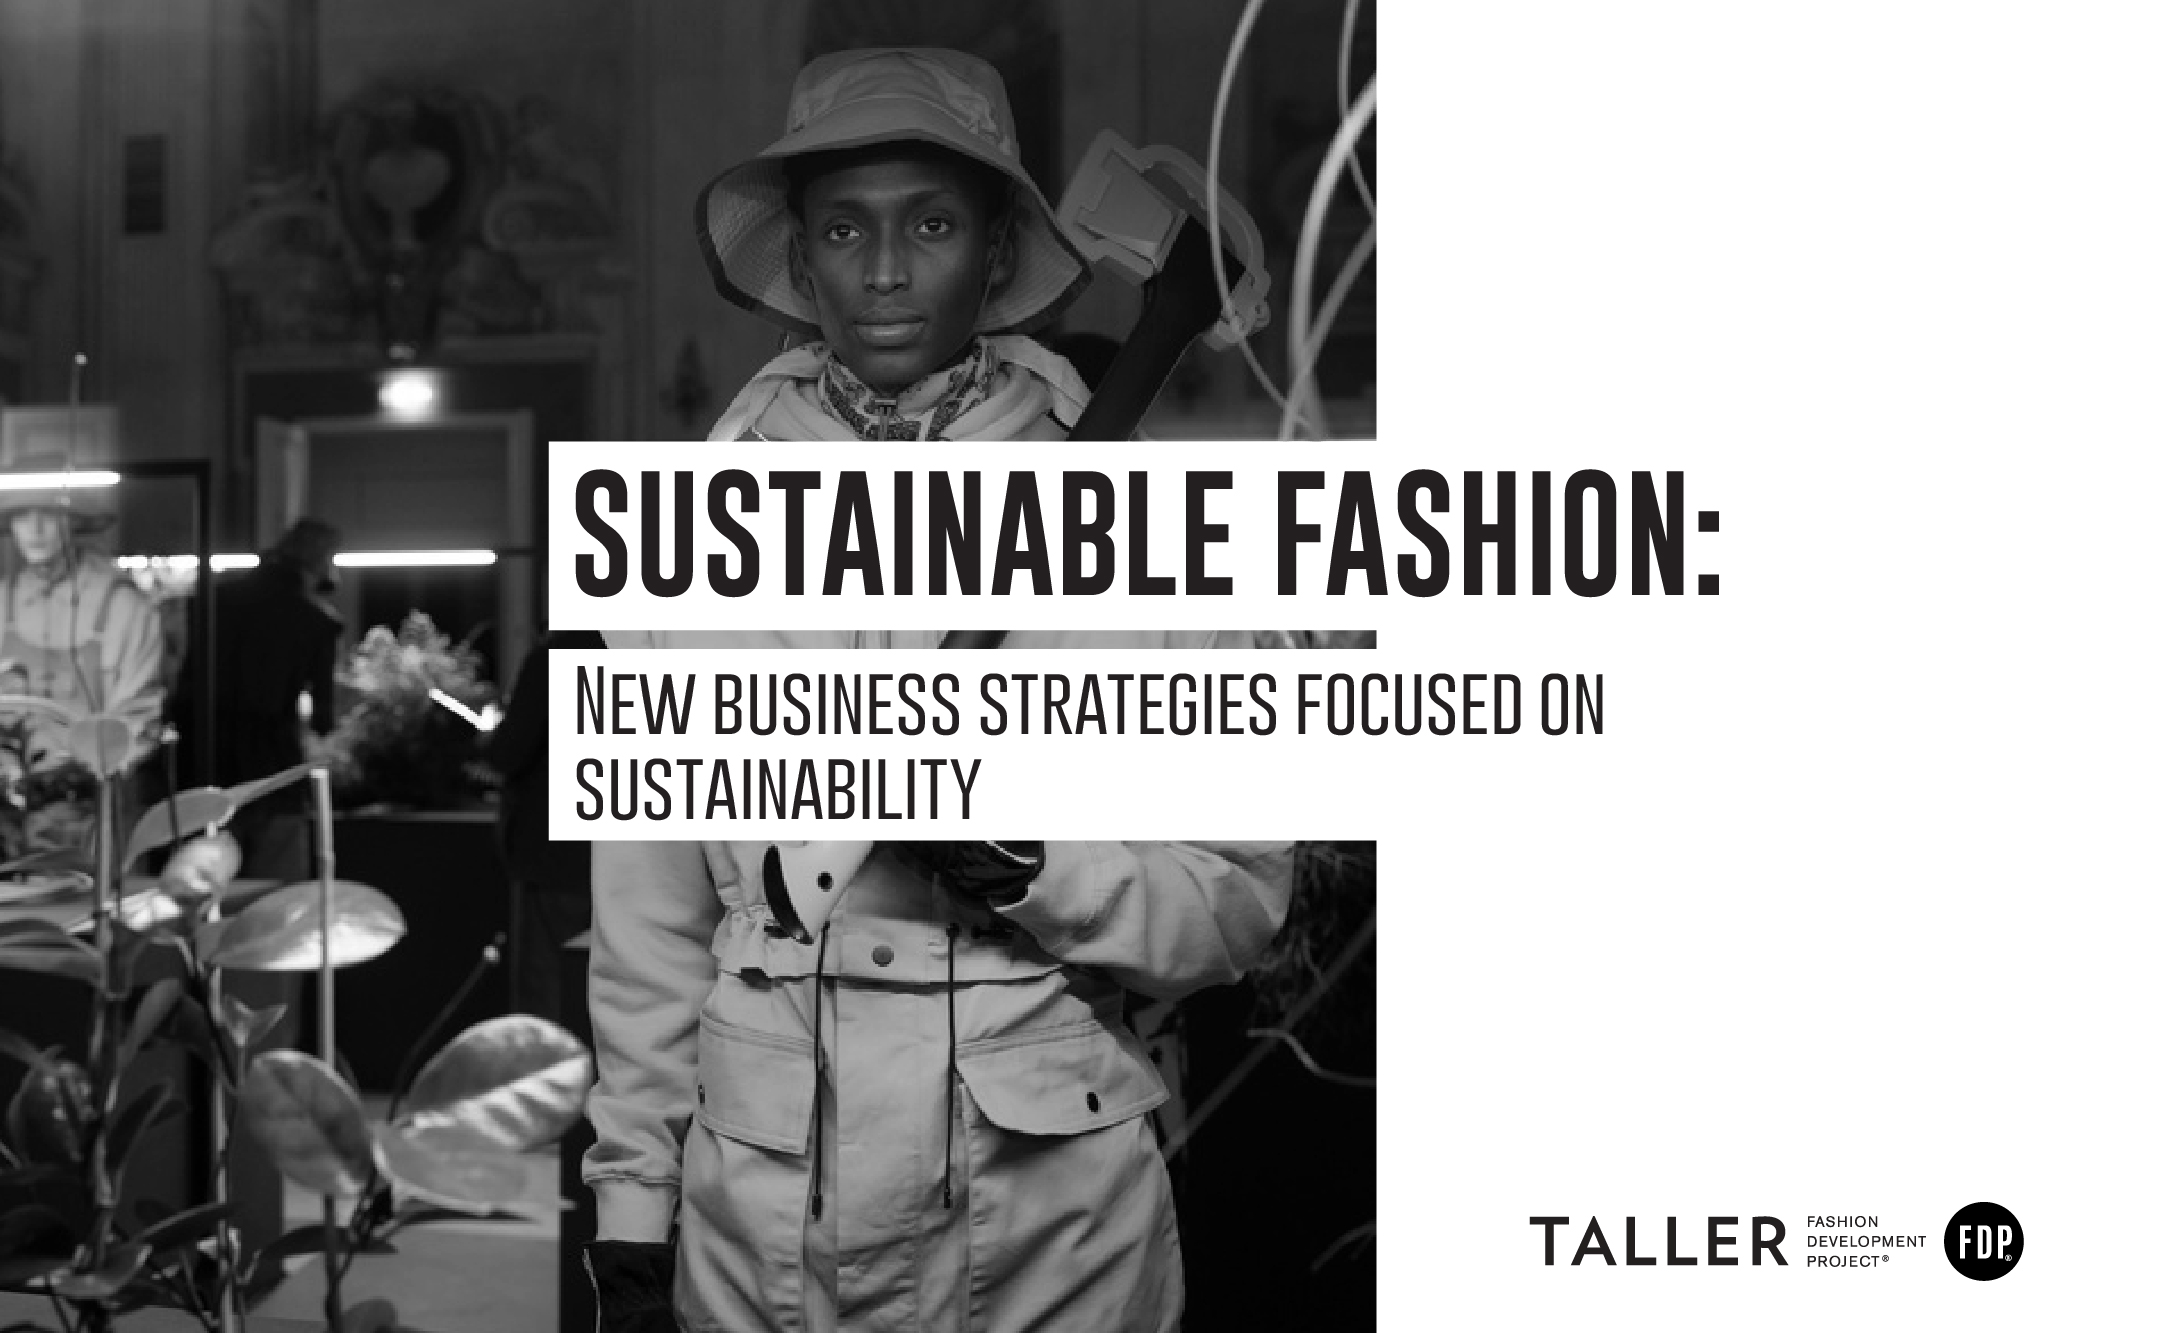 Sustainable Fashion: New business strategies focused on sustainability.